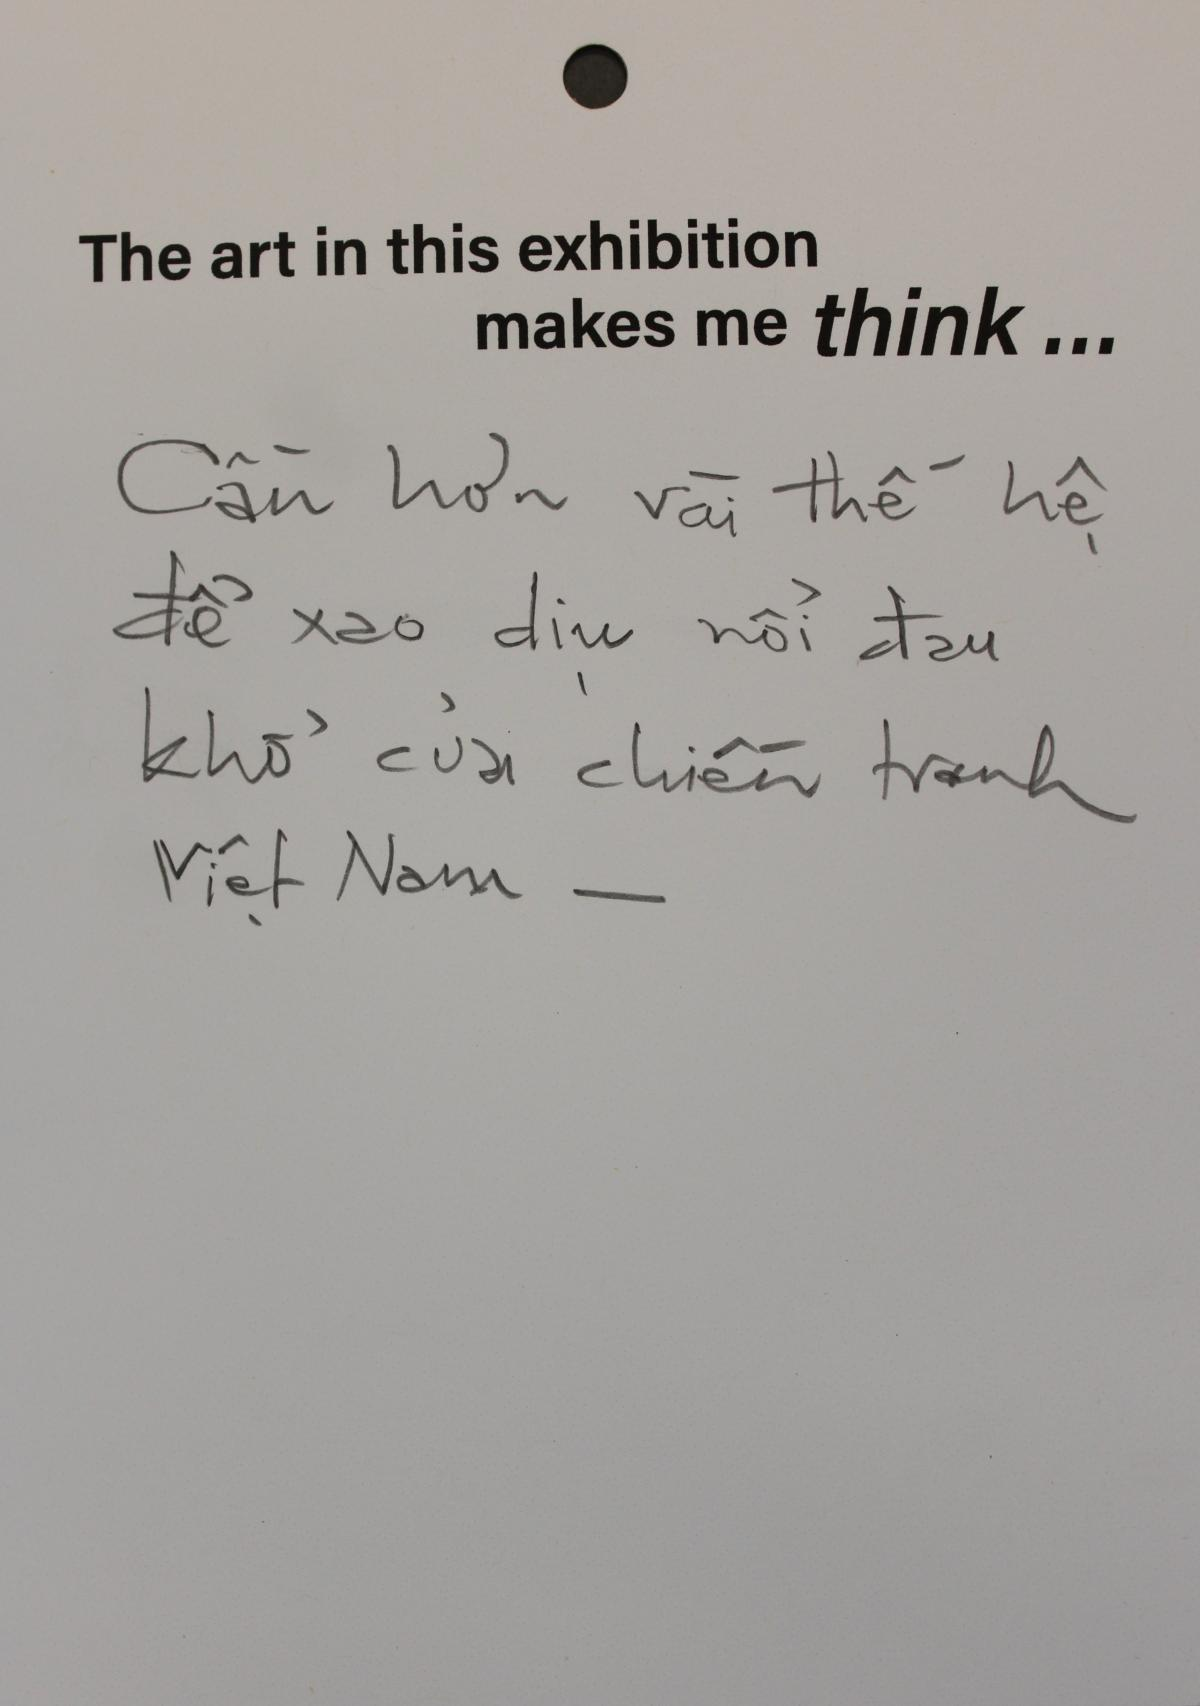 A visitor respond to the exhibition by writing in Vietnamese about the pain of the war